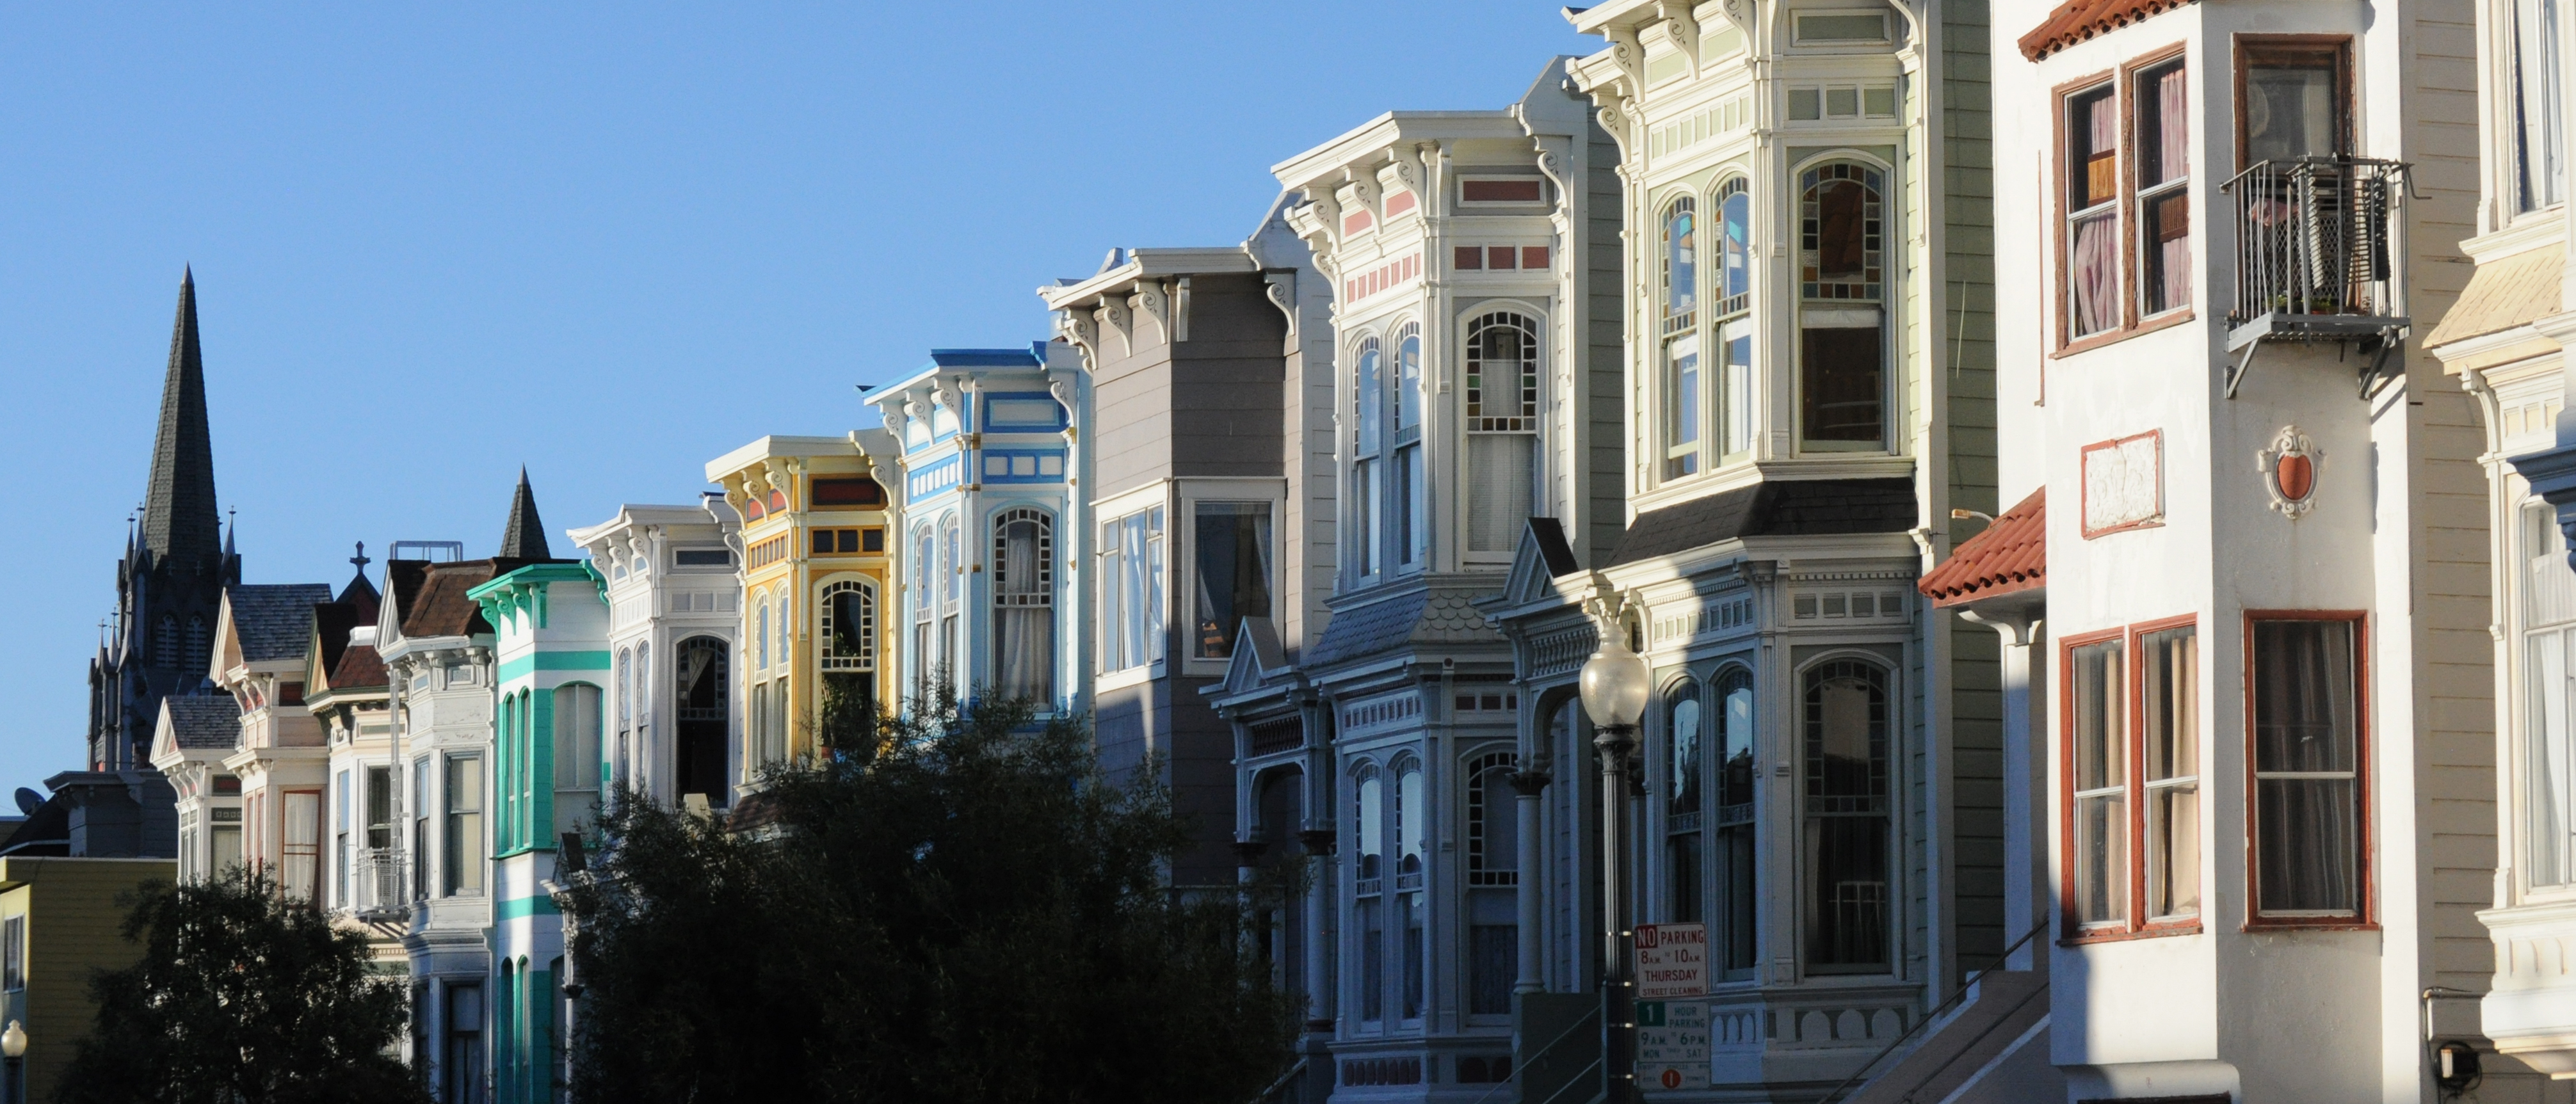 San Francisco home prices are up 10.3 percent from last March according to data from the Standard & Poor's Case-Shiller 20-city index; highest in national housing market